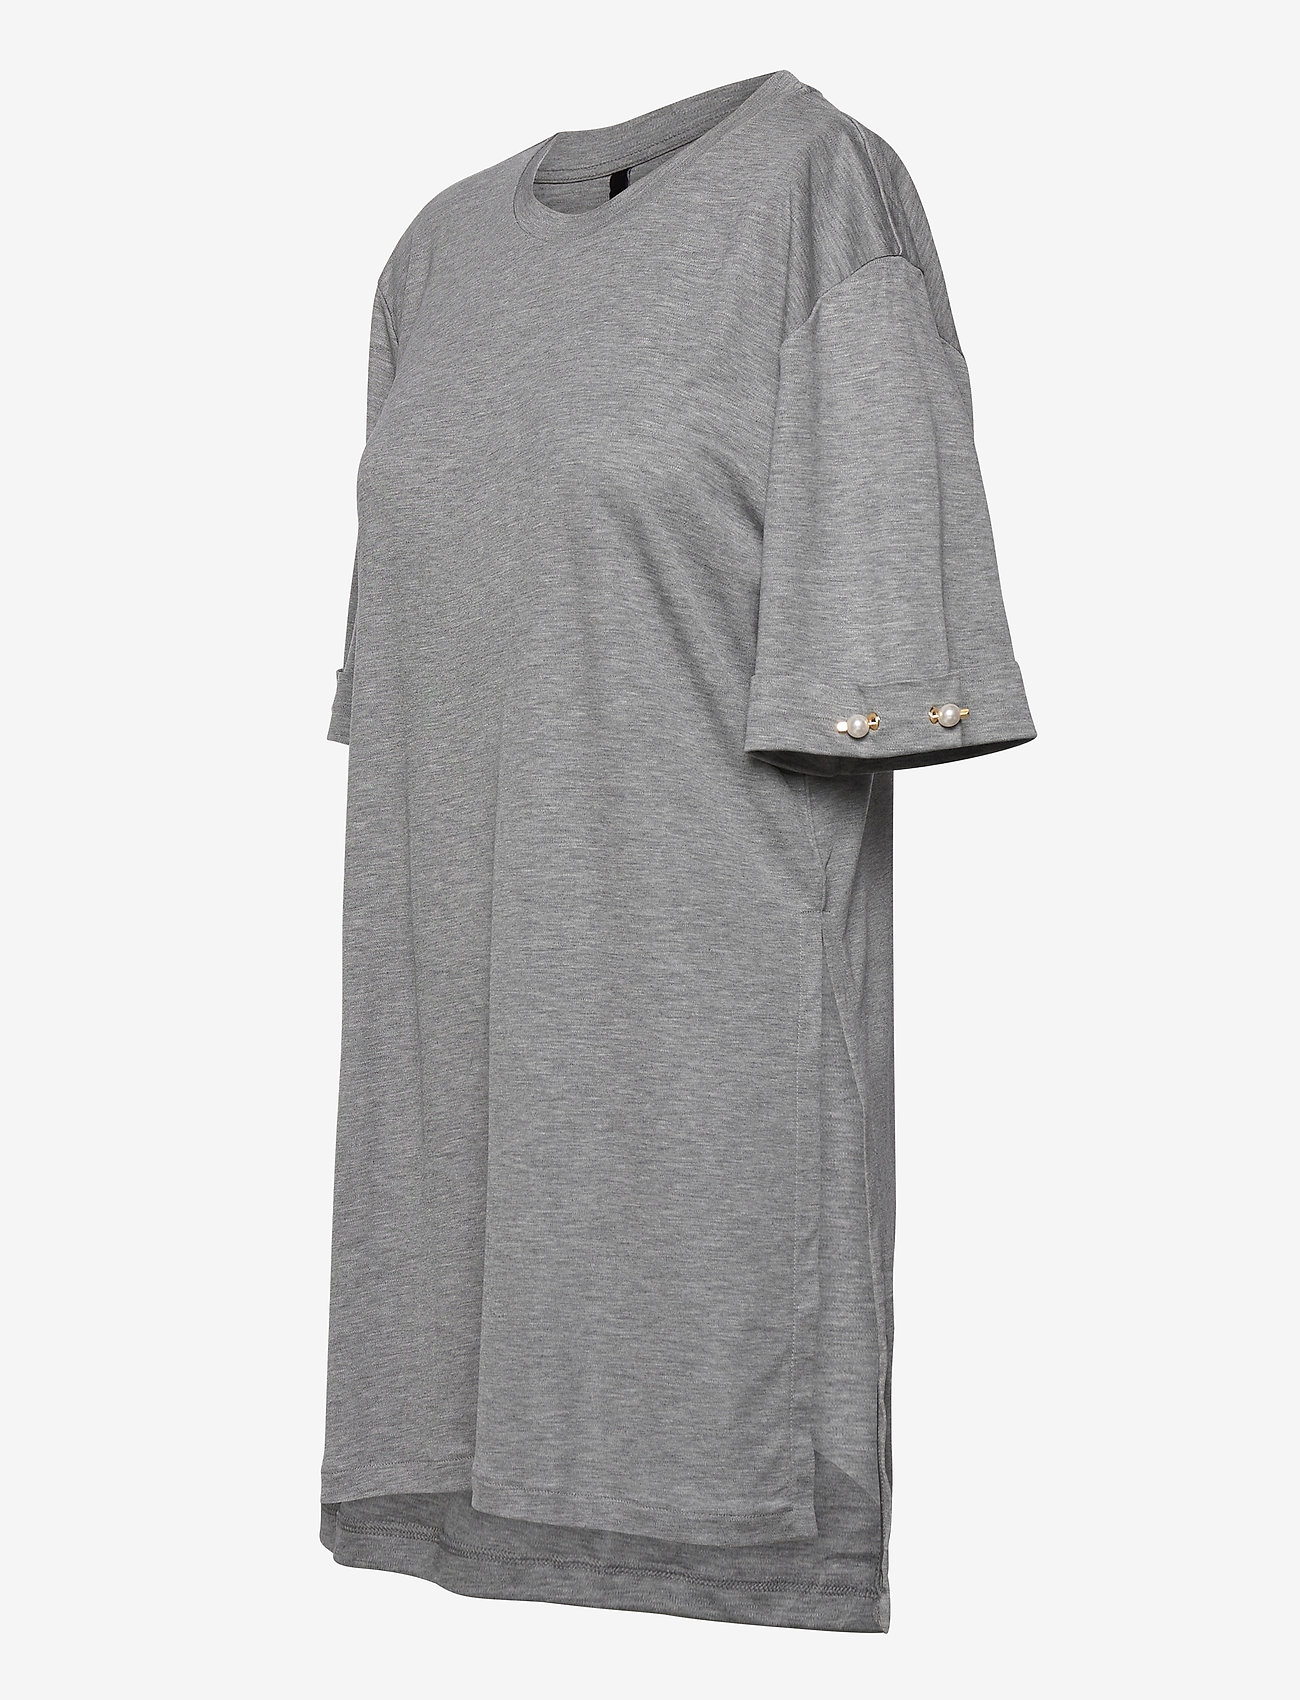 Mother of Pearl - MINTIE T-SHIRT - t-shirts - grey - 2